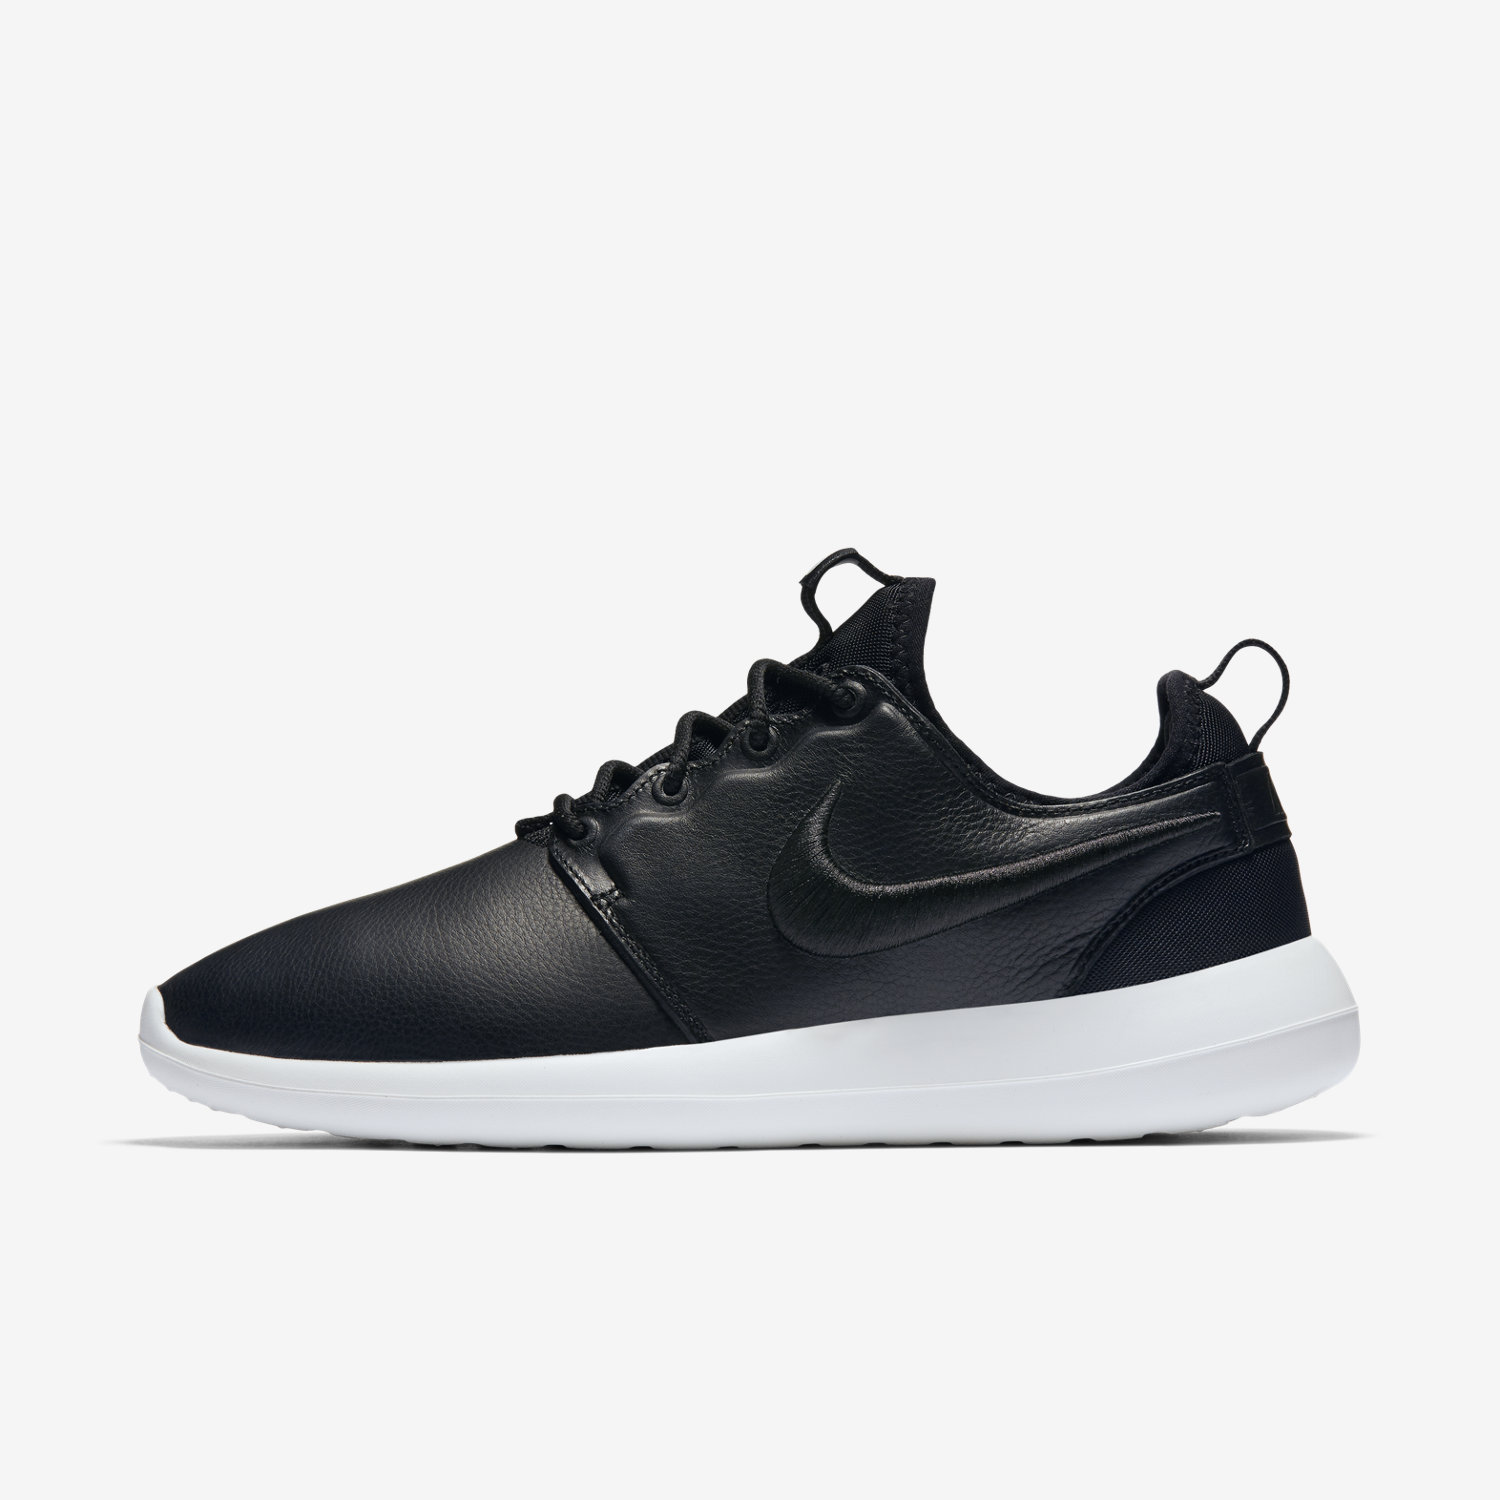 NIKE Roshe Two copa / copa / cool gray SNIPES online shop